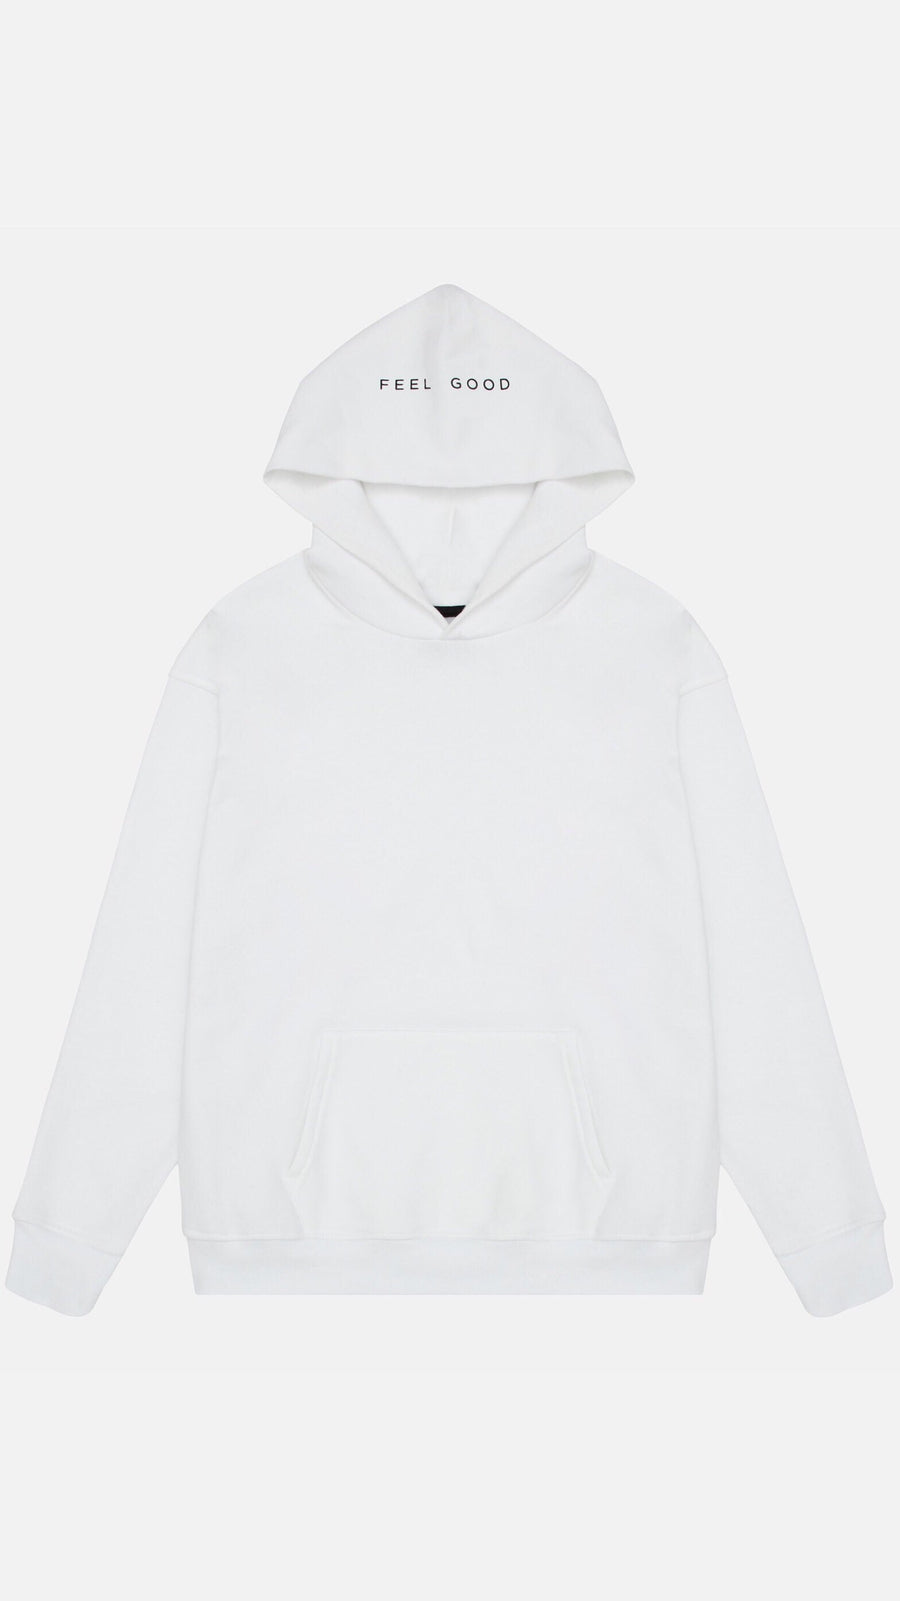 Feel Good Hoodie by RiLEY STUDIO